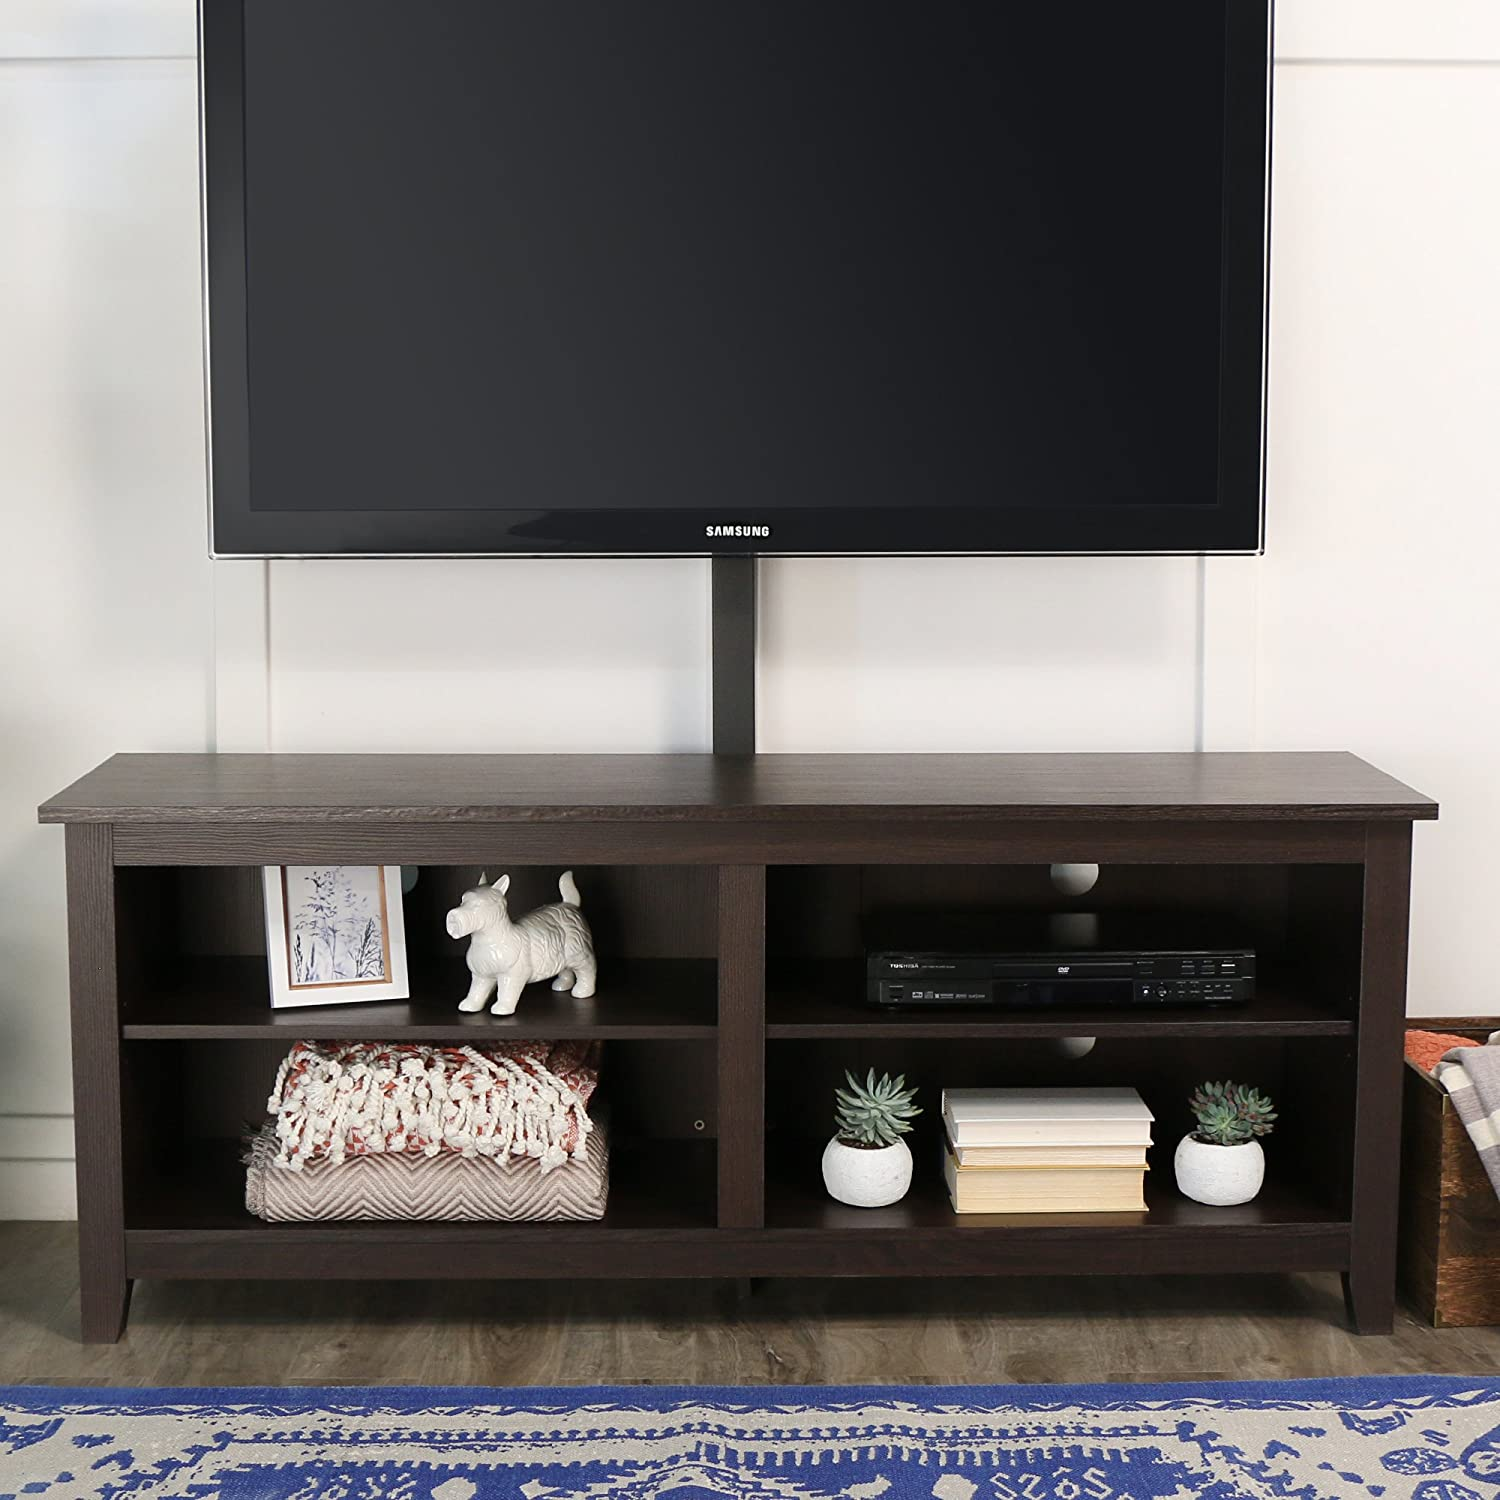 "WE Furniture 58"" Wood TV Stand Console with Mount, Espresso"